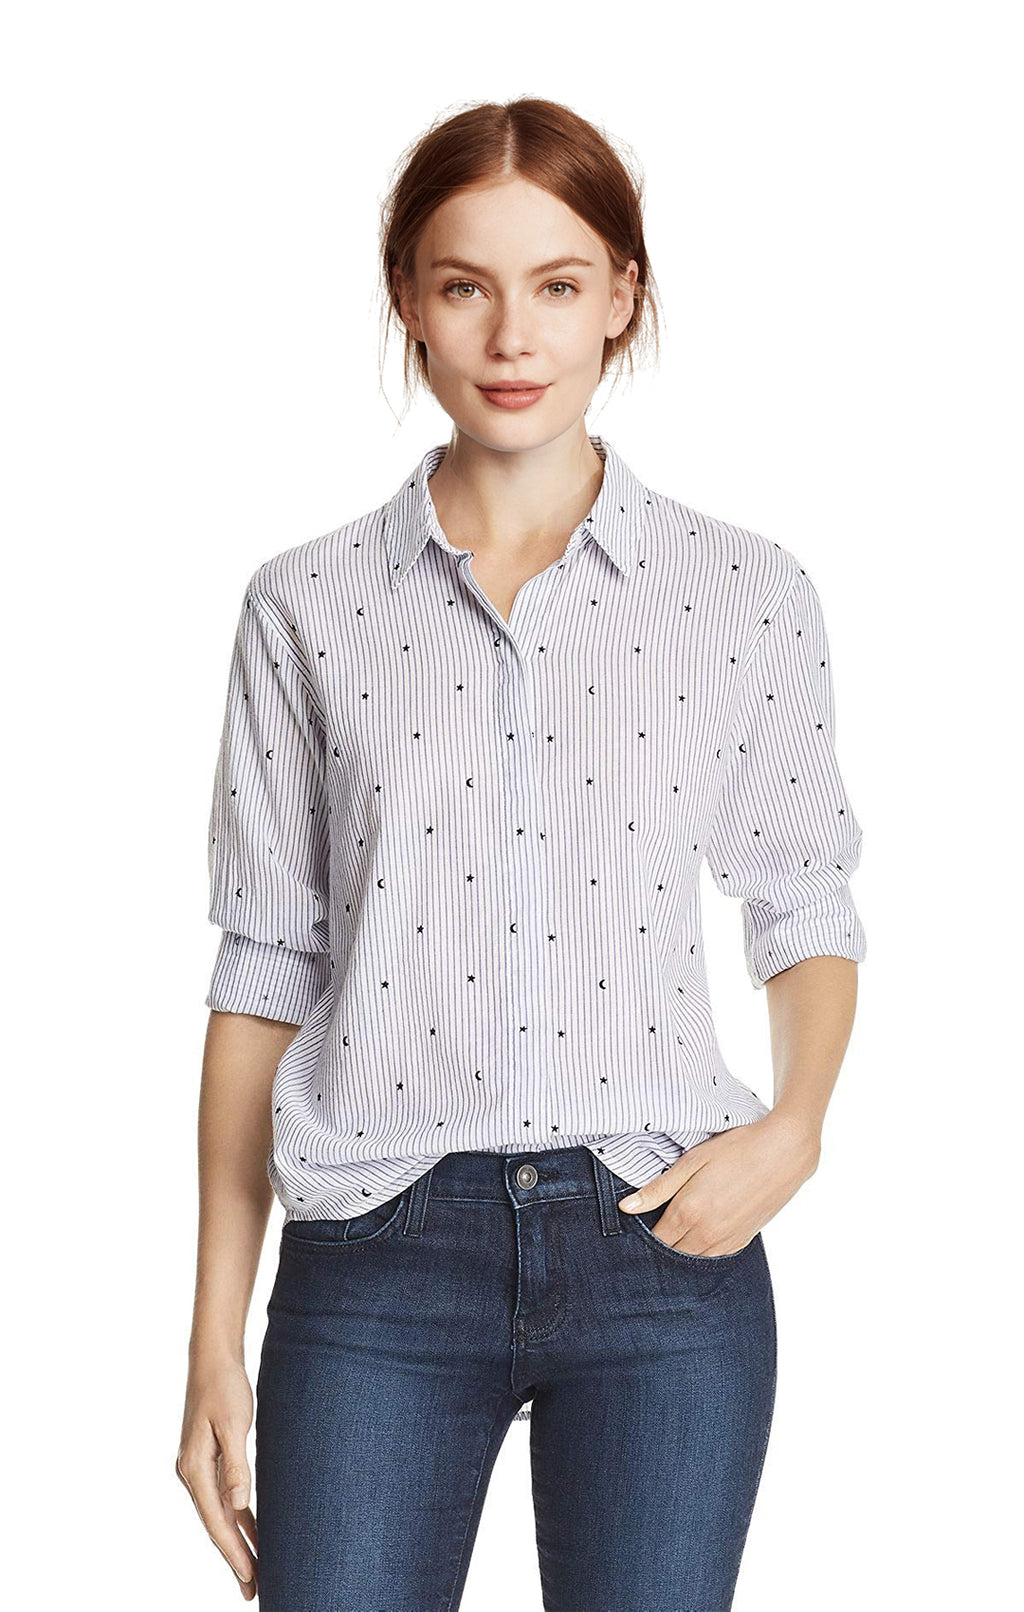 RAILS CLOTHING - Taylor Shirt online at PAYA boutique